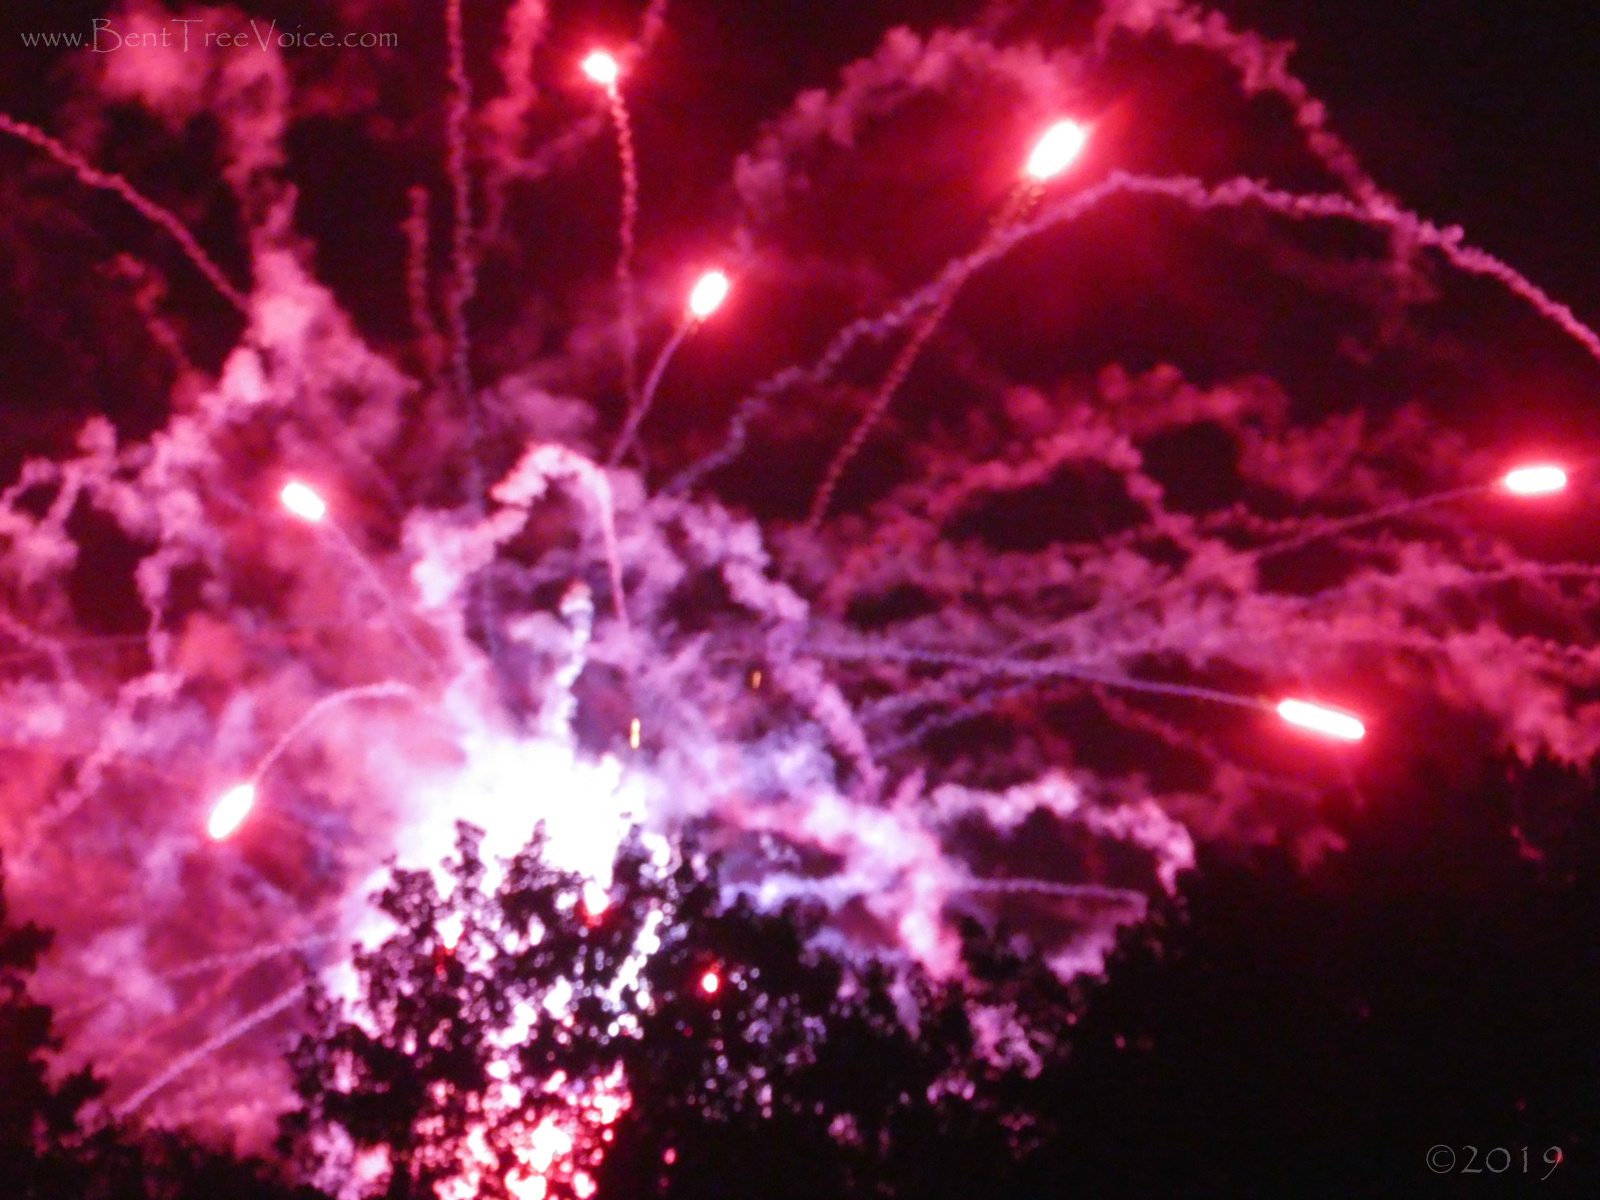 July 4, 2019 - Fireworks finale